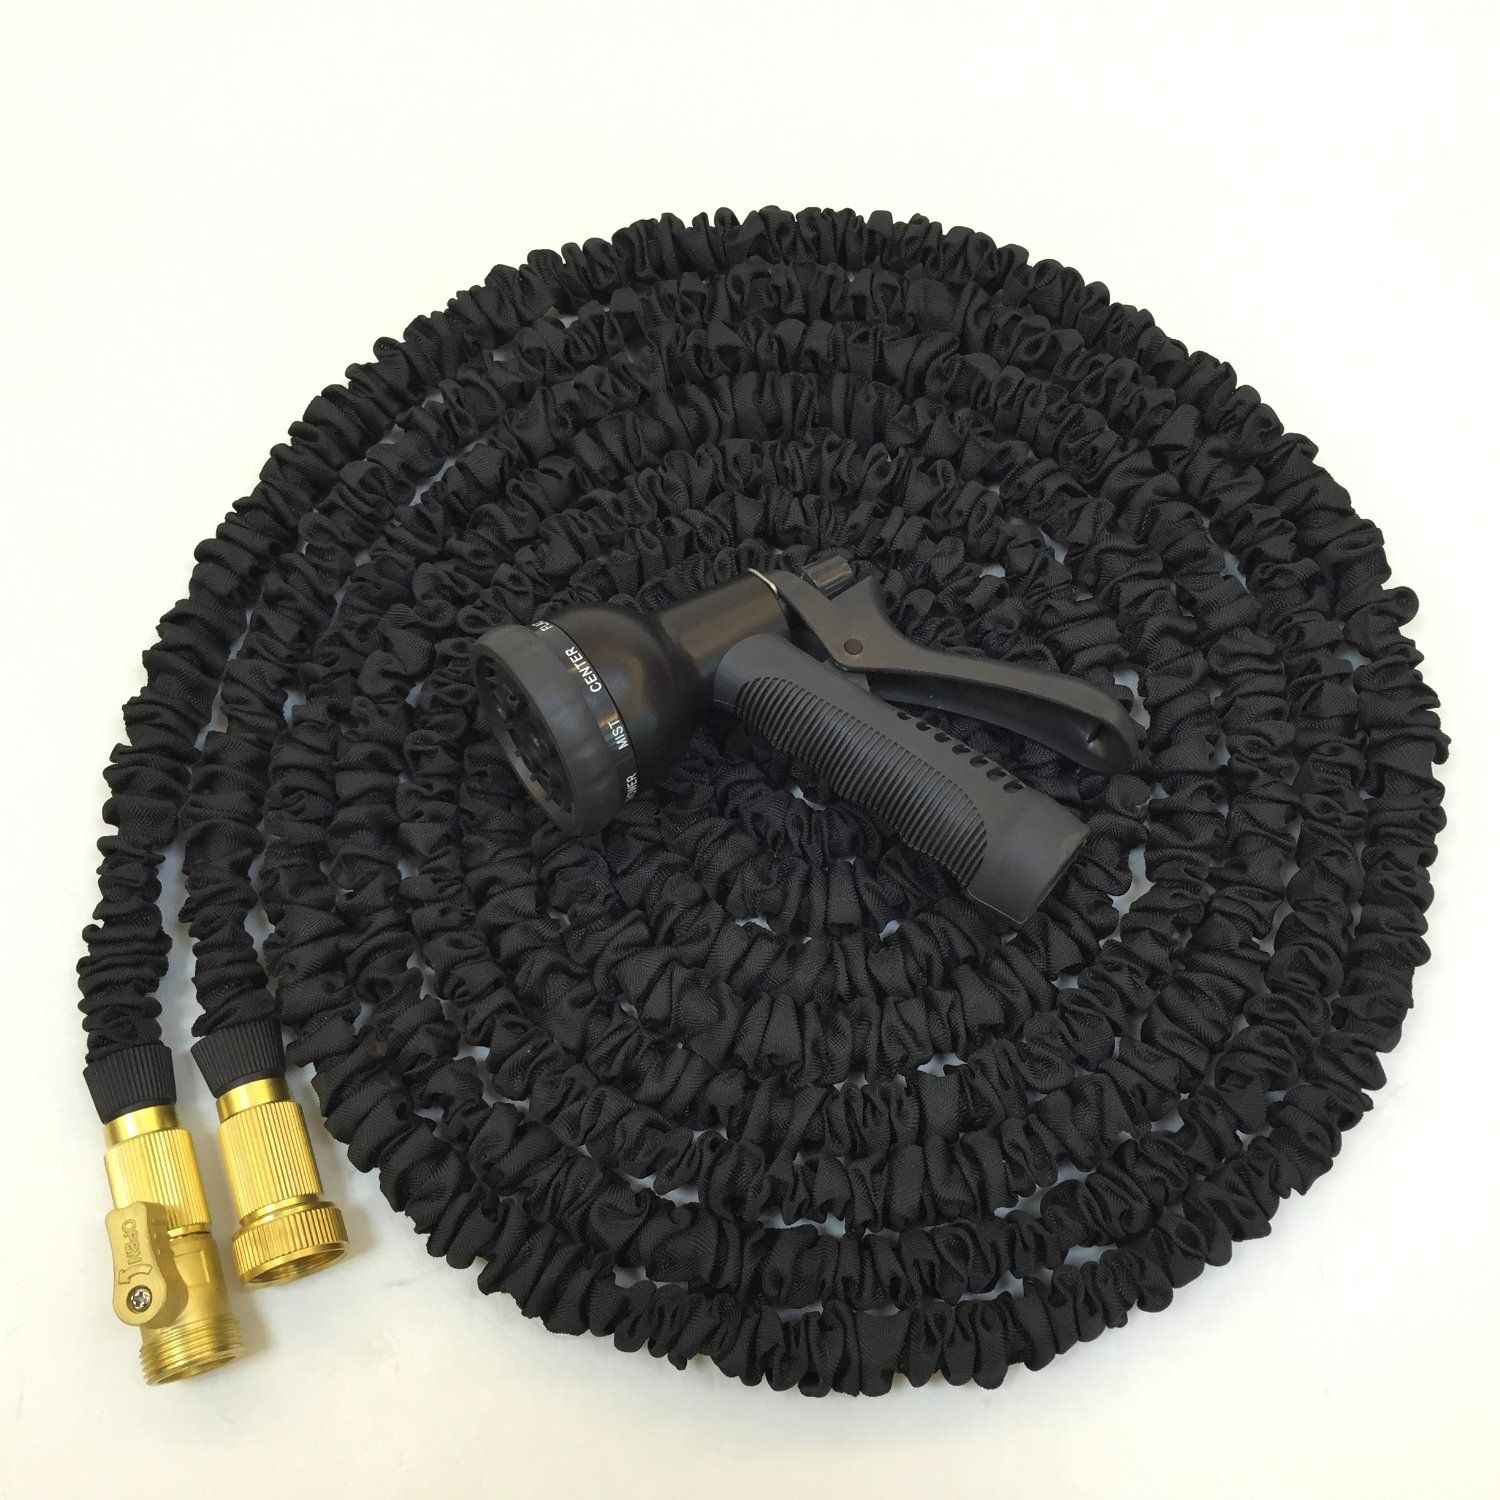 Pin On 50 Ft Expanding Hose Strongest Expandable Garden Hose On The Planet Solid Brass Ends Double Latex